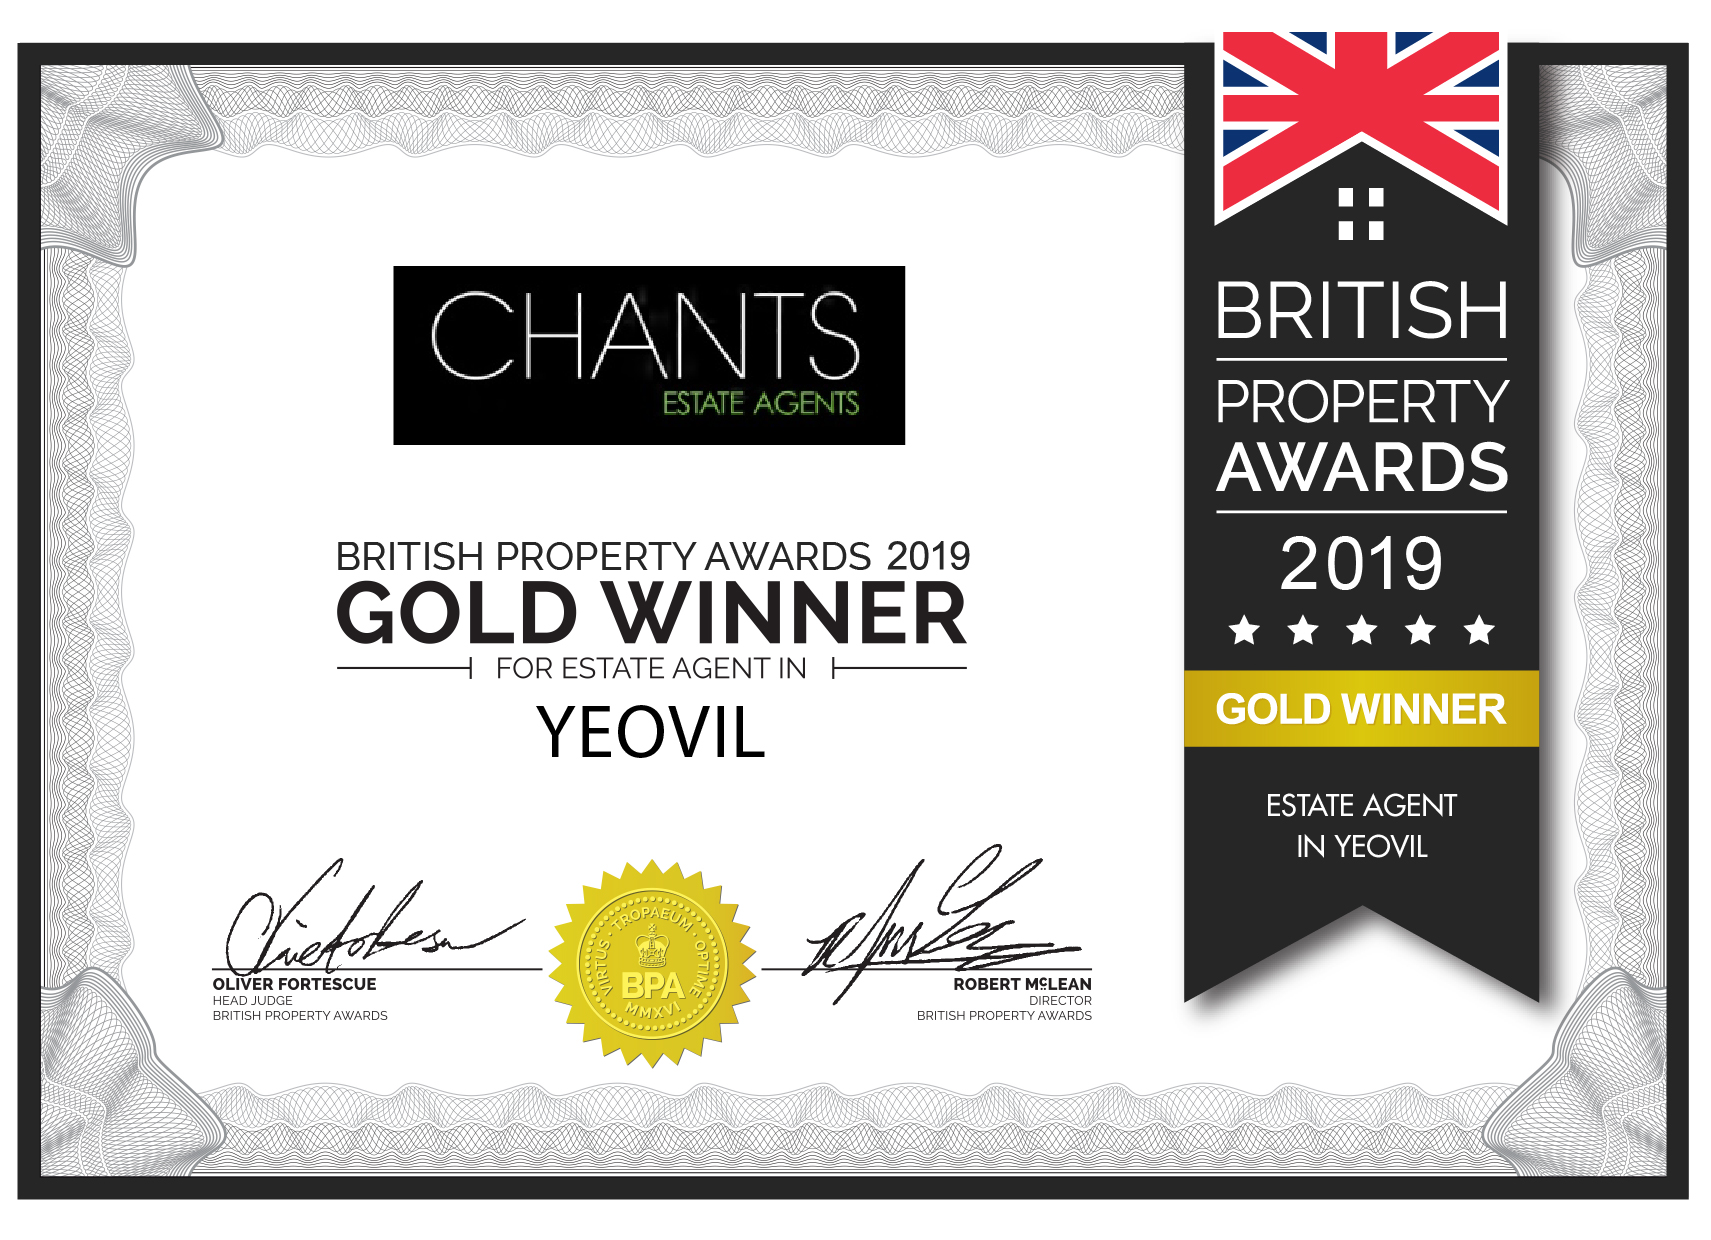 Chants awarded the British Property Award 2019 for Yeovil